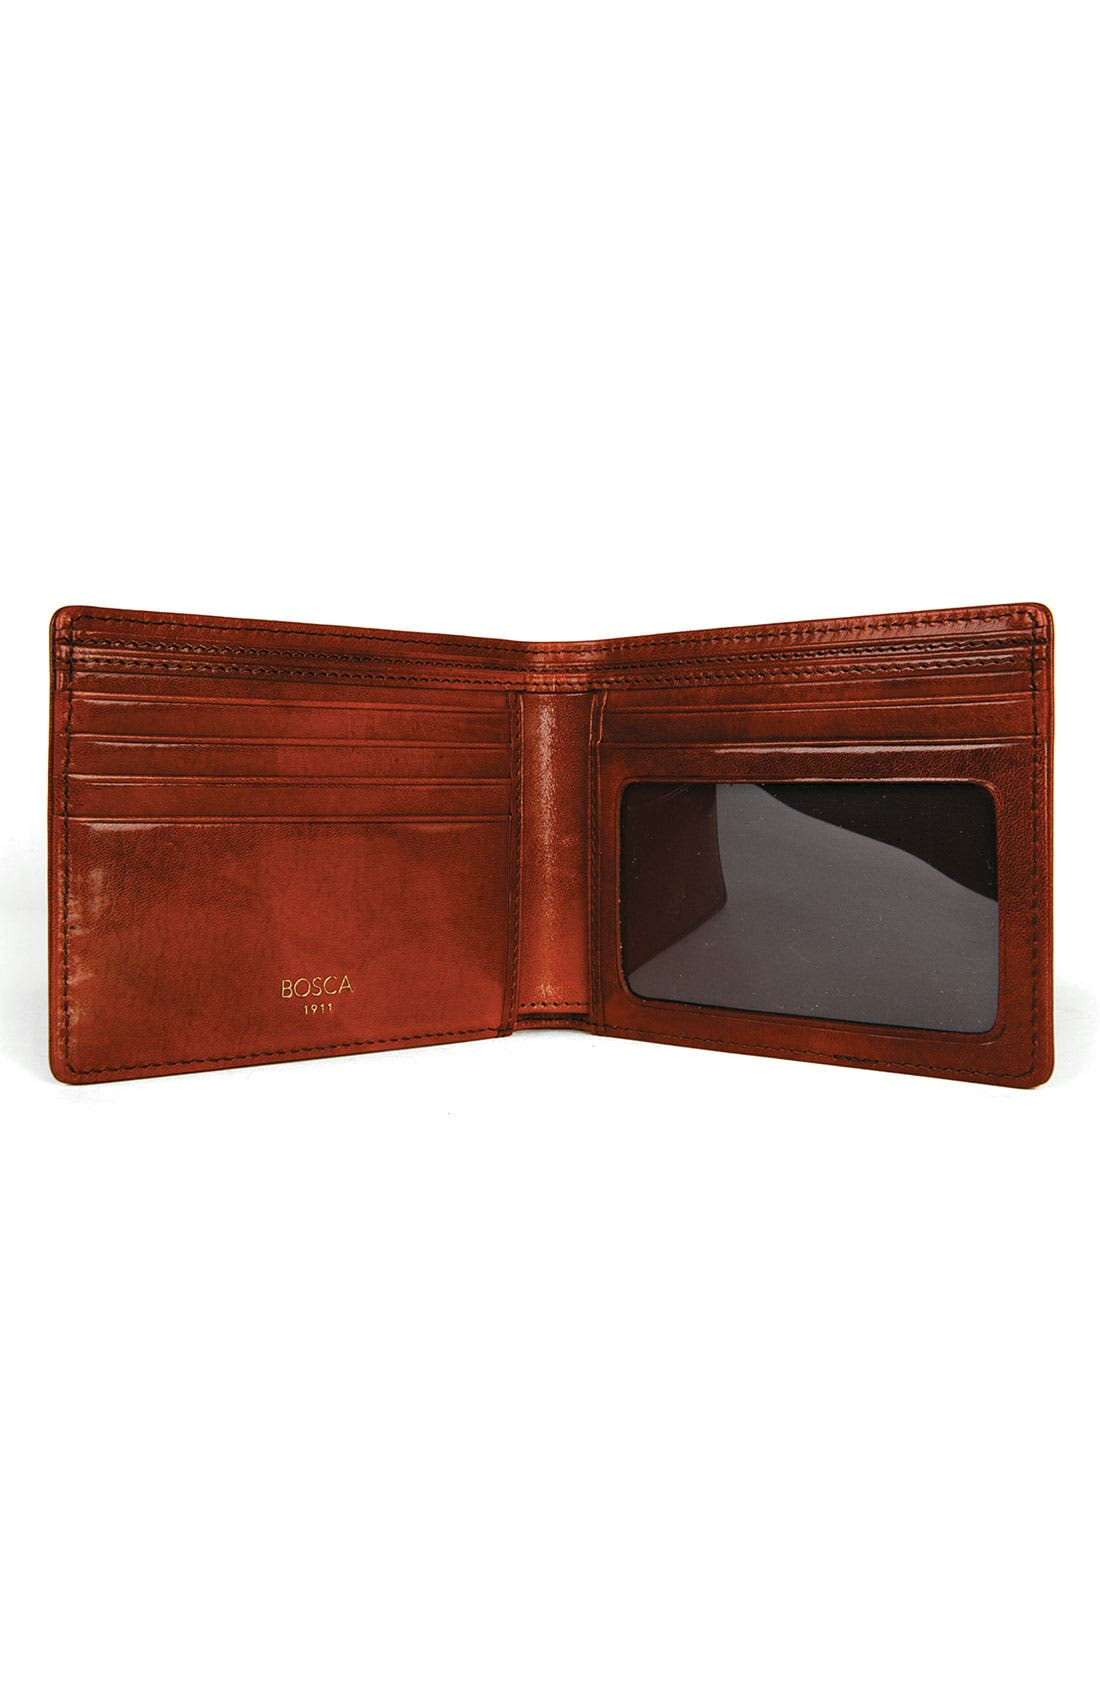 Main Image - Bosca 'Executive - Old Leather' Wallet